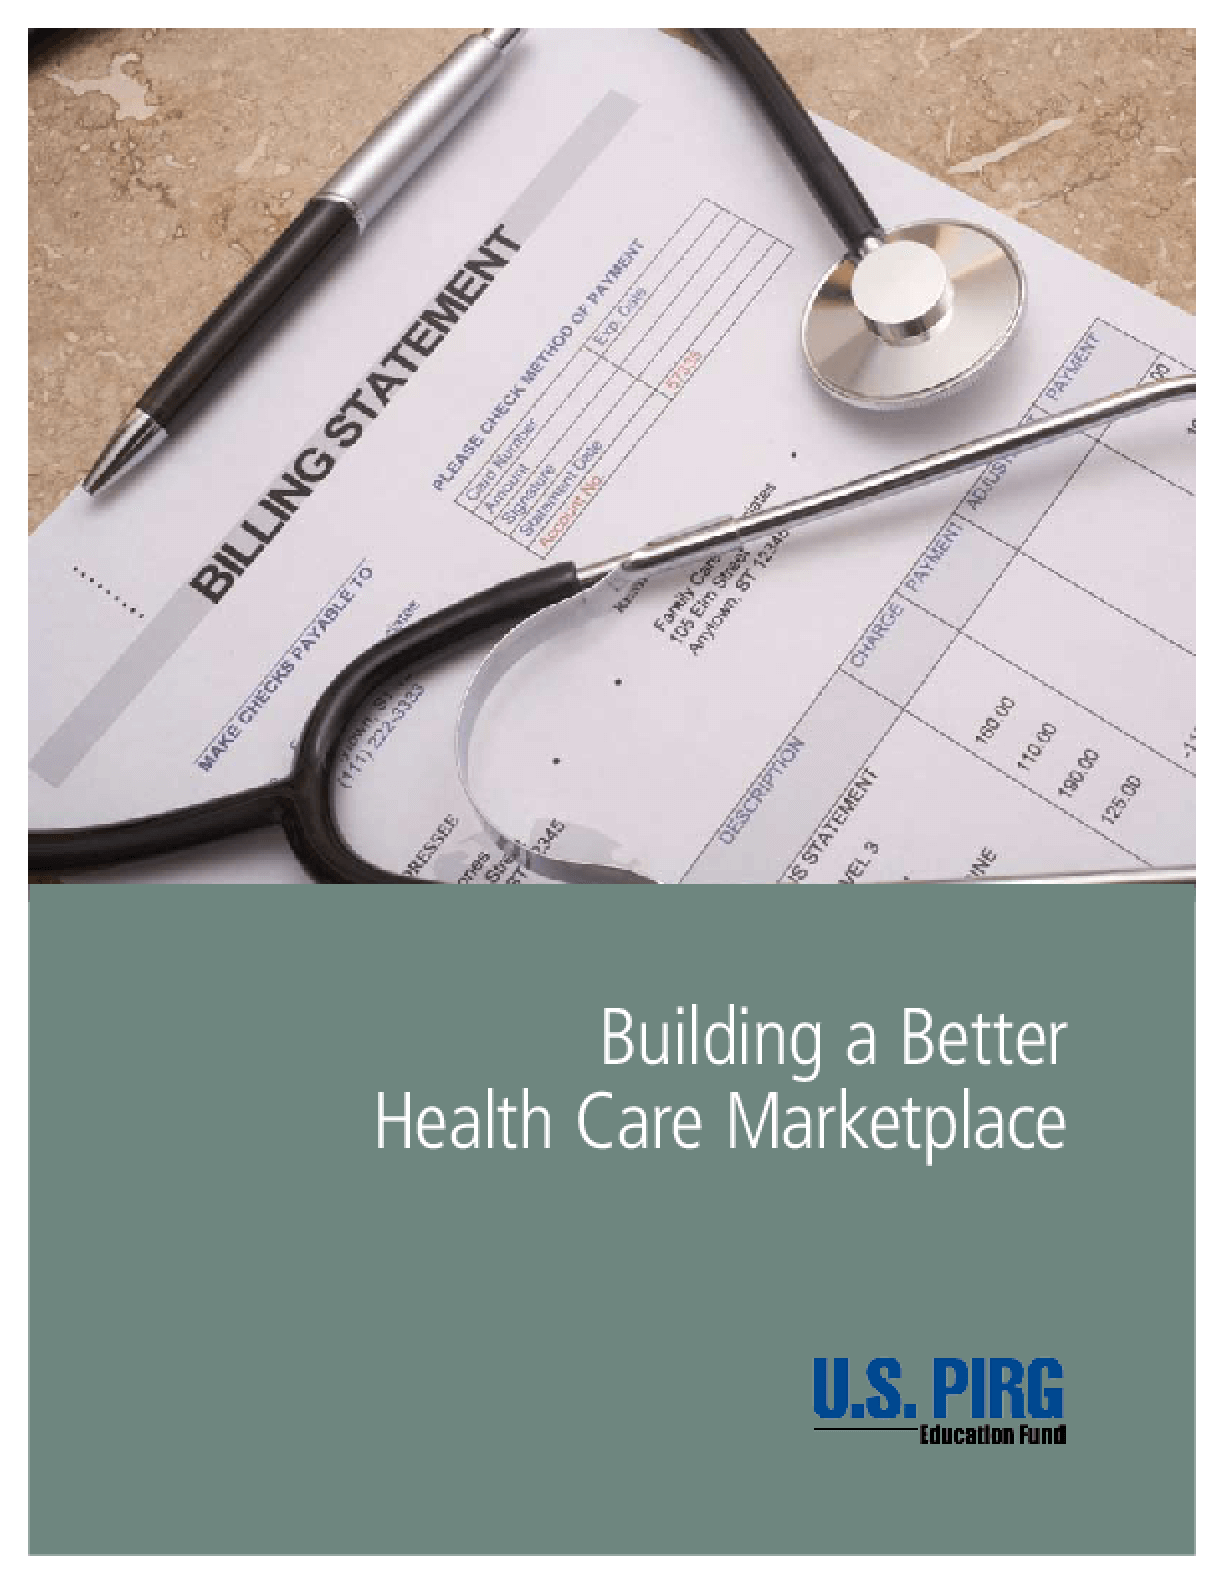 Building a Better Health Care Marketplace